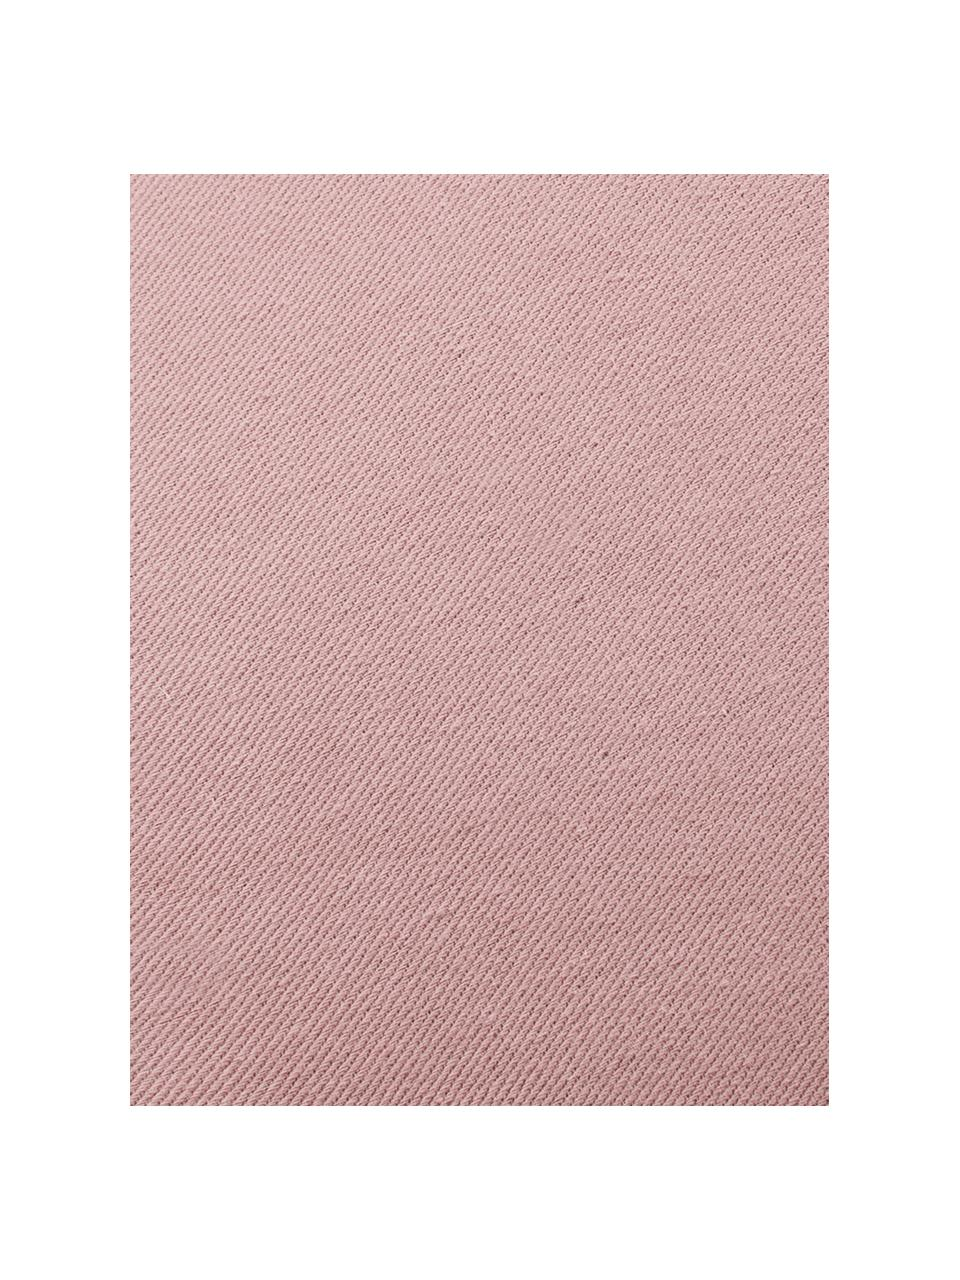 Coussin coquillage velours Shell, Vieux rose